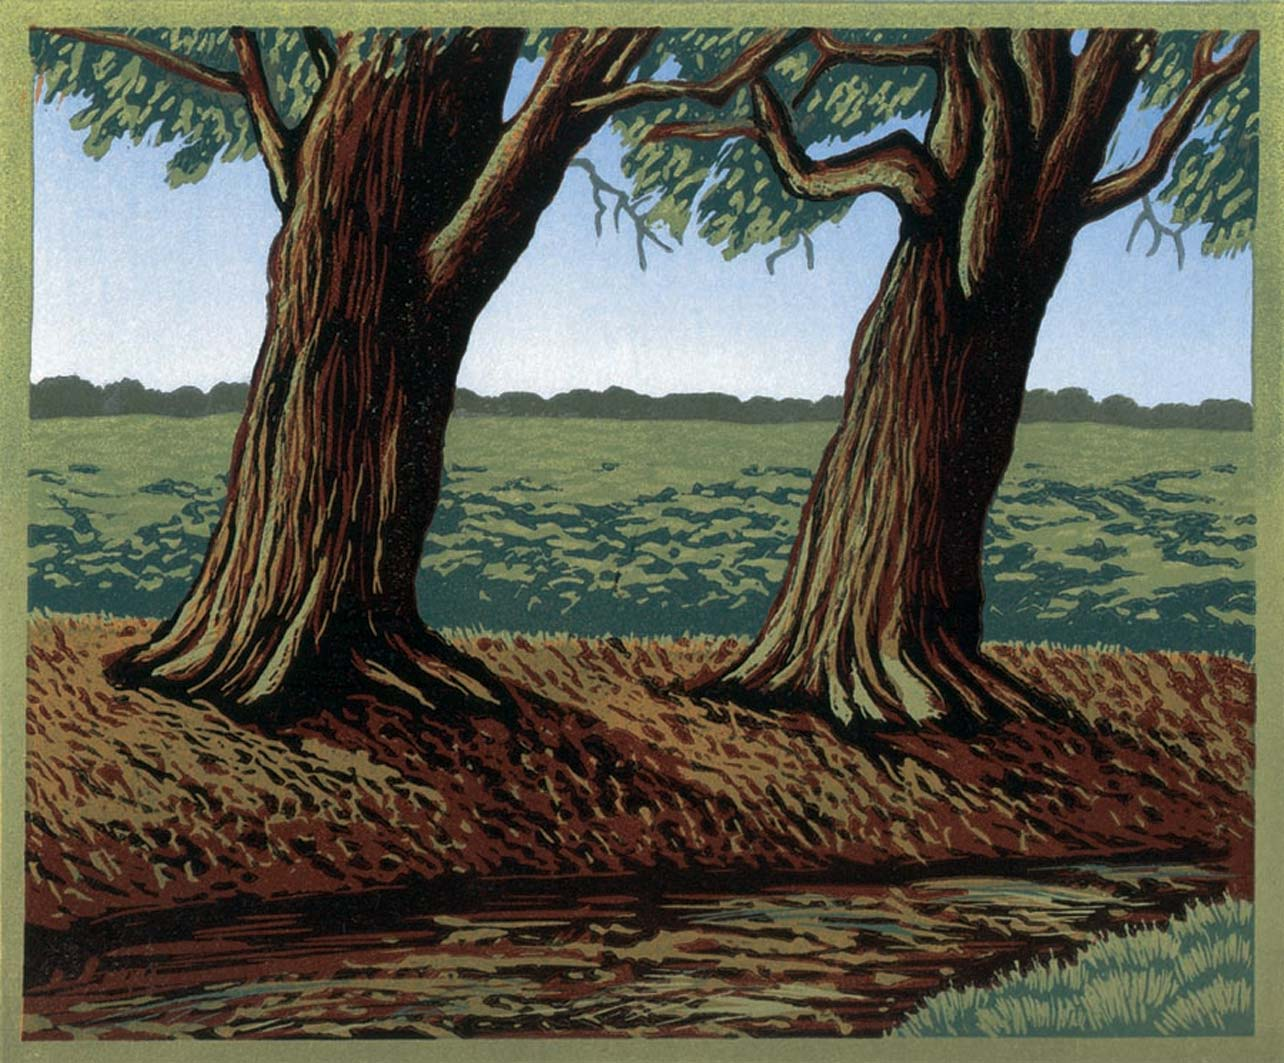 Two Trees, 20x24, ed: 15, £175